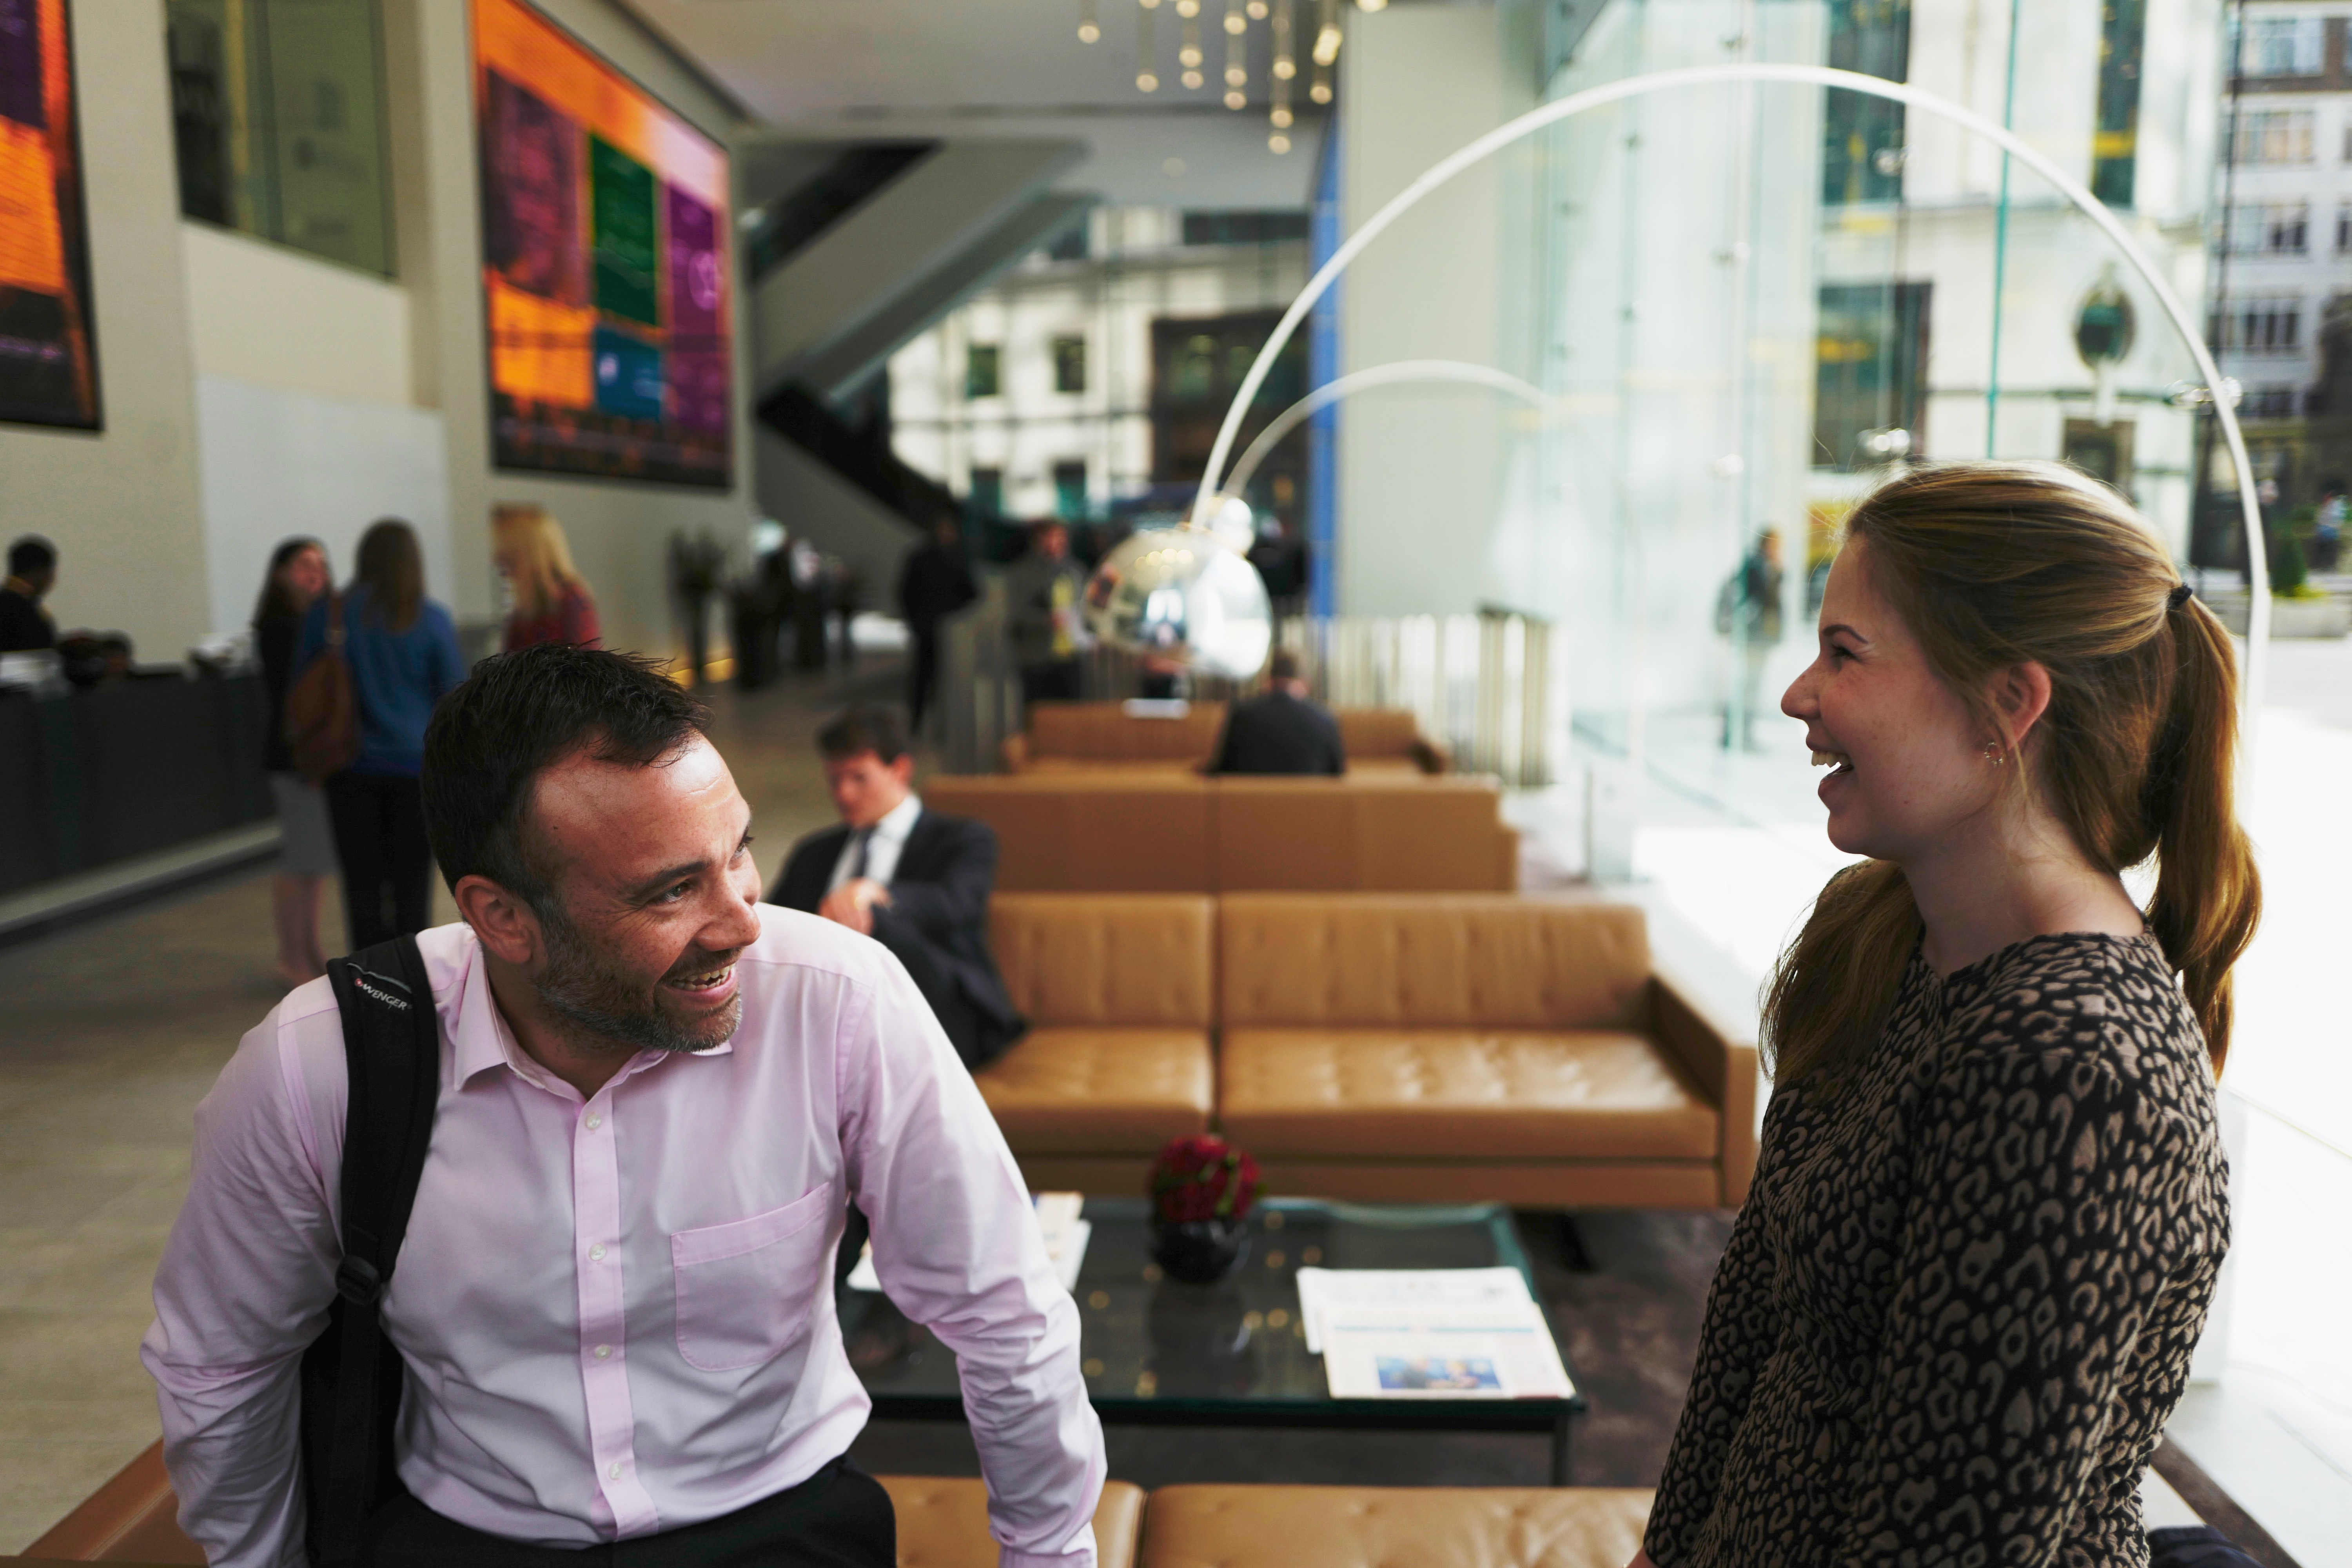 Man and woman laughing in Aviva office reception in London